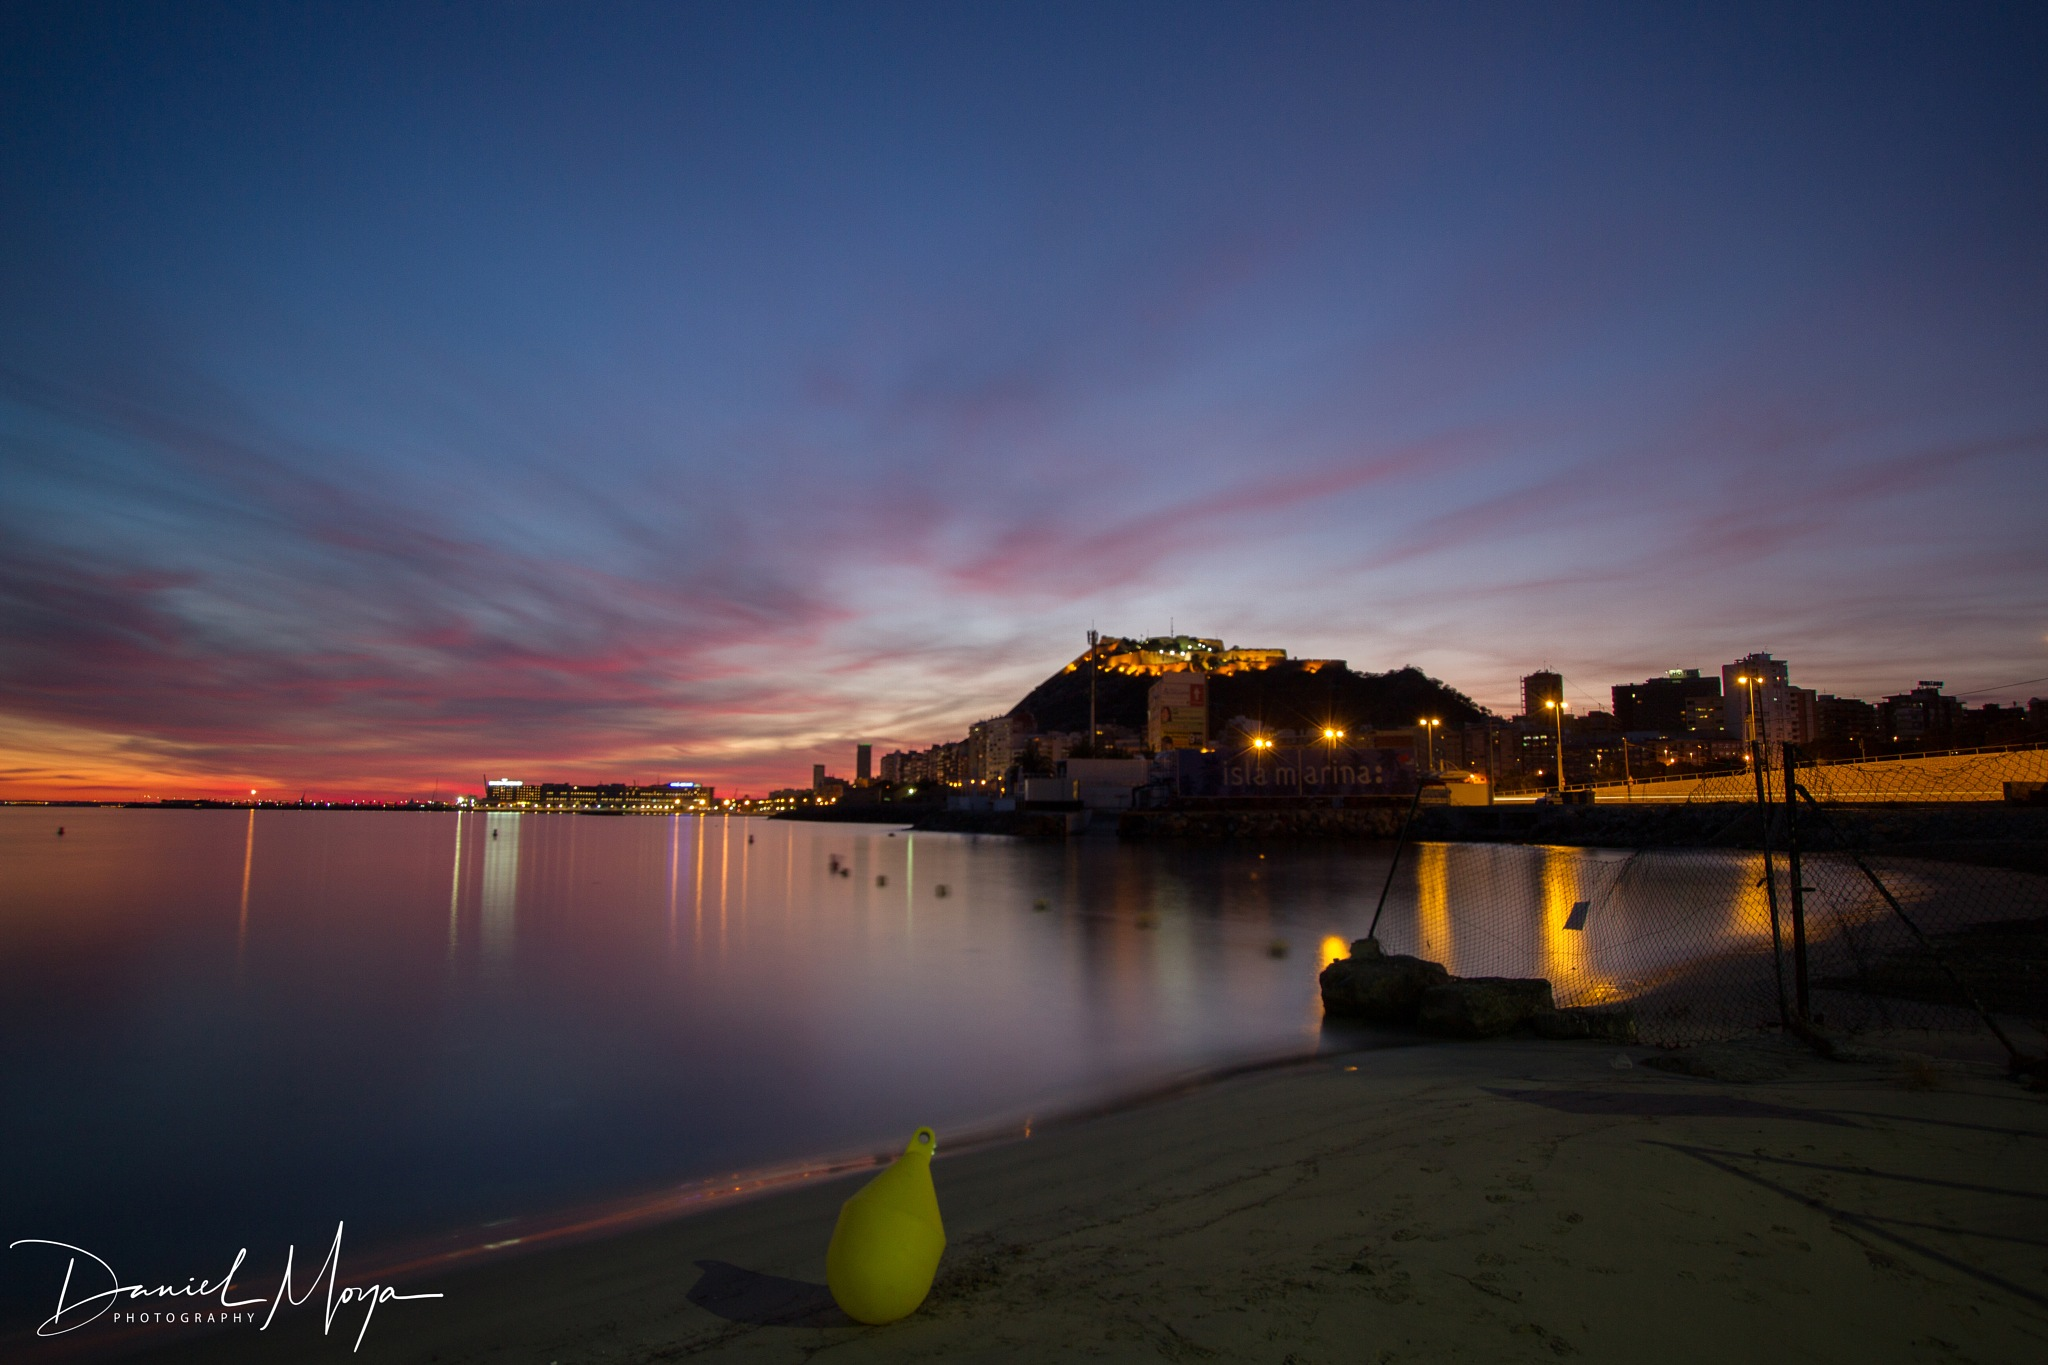 Sunset at Alicante  by DanielMoyaFuster